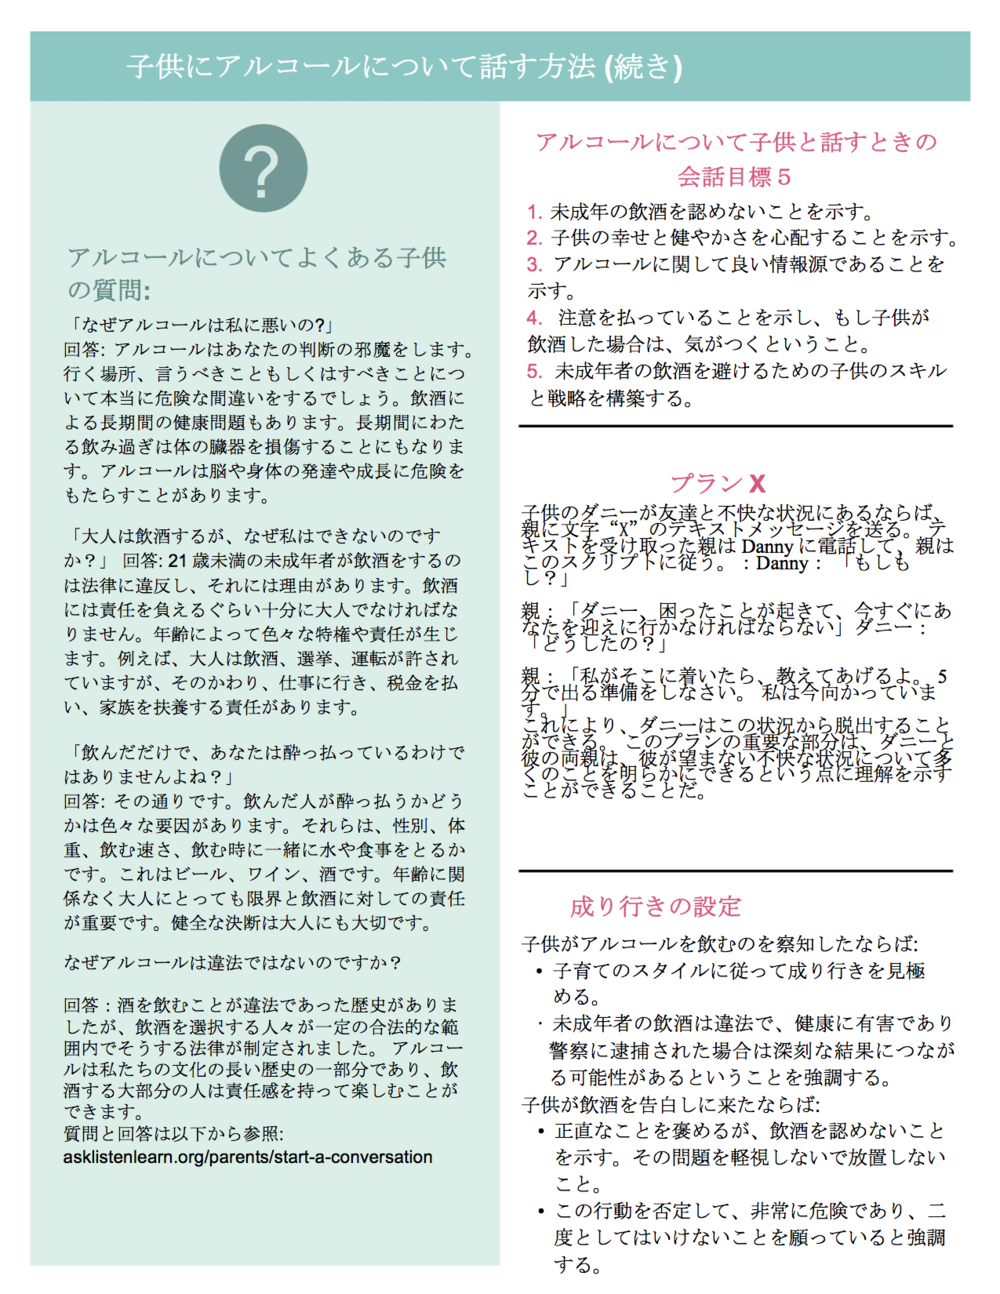 Japn-How Fact Sheet2.png